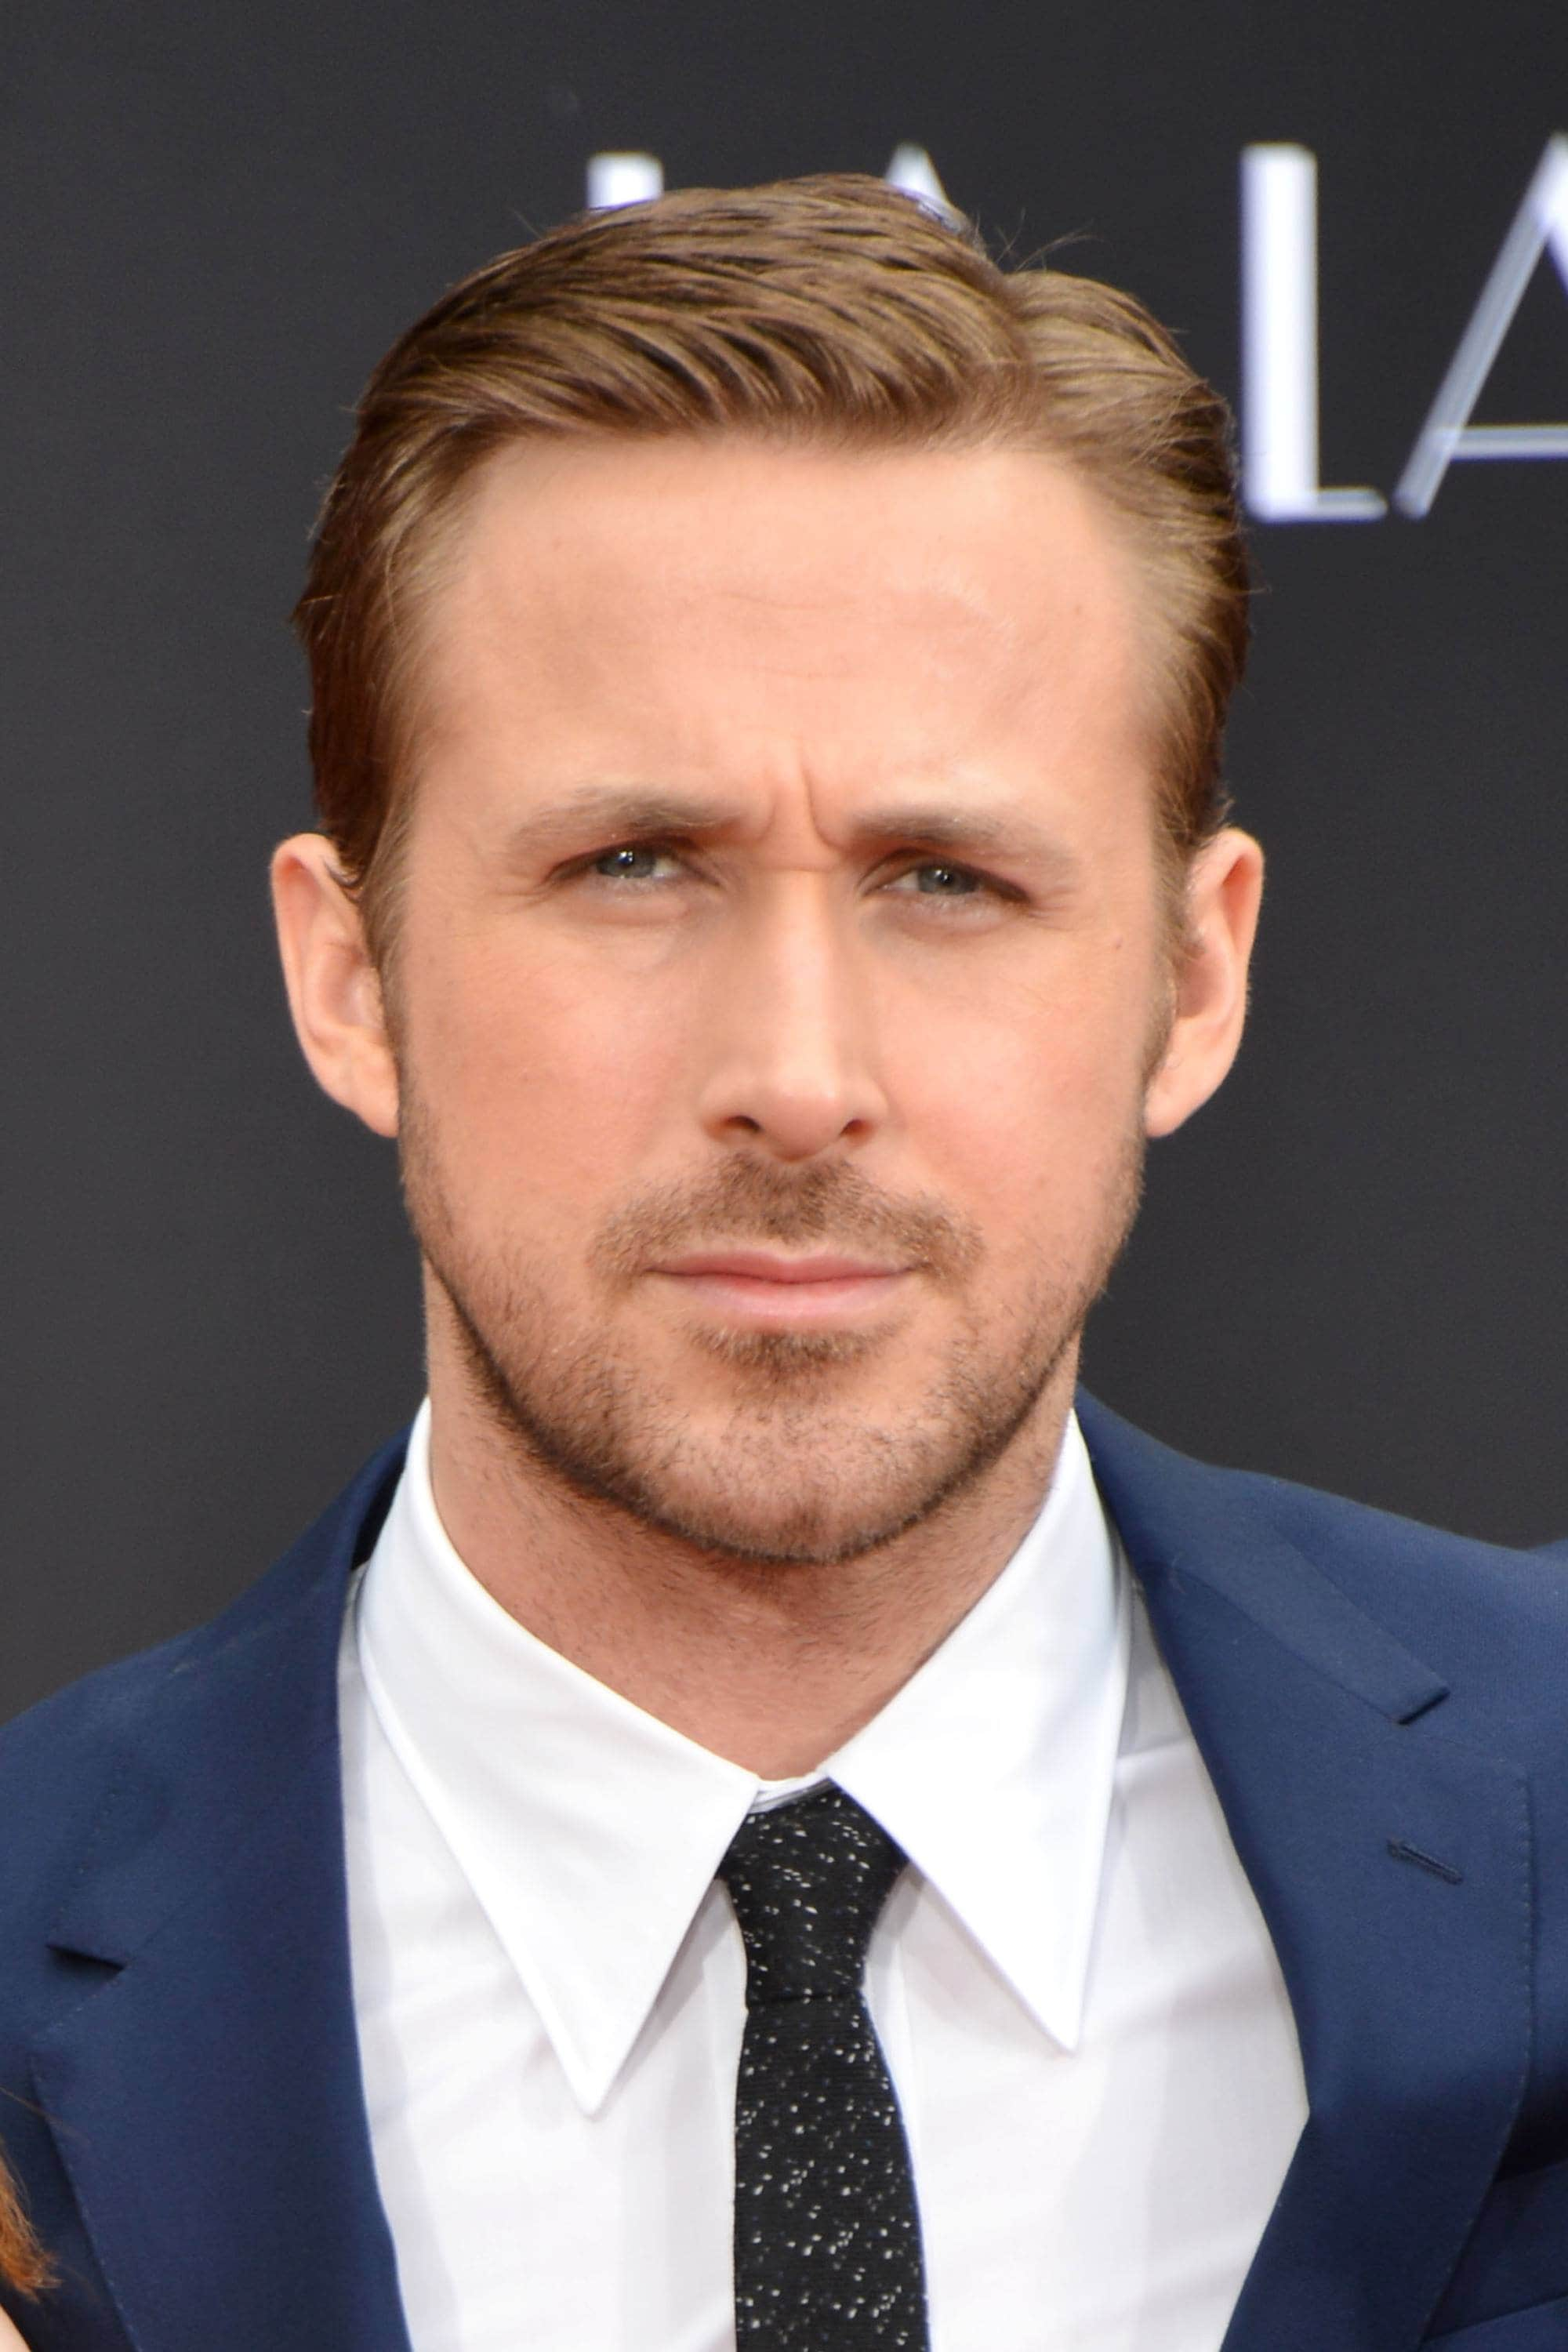 Ivy League haircut: Ryan Gosling with light brown hair worn in an Ivy League haircut, wearing a blue blazer, white shirt and tie